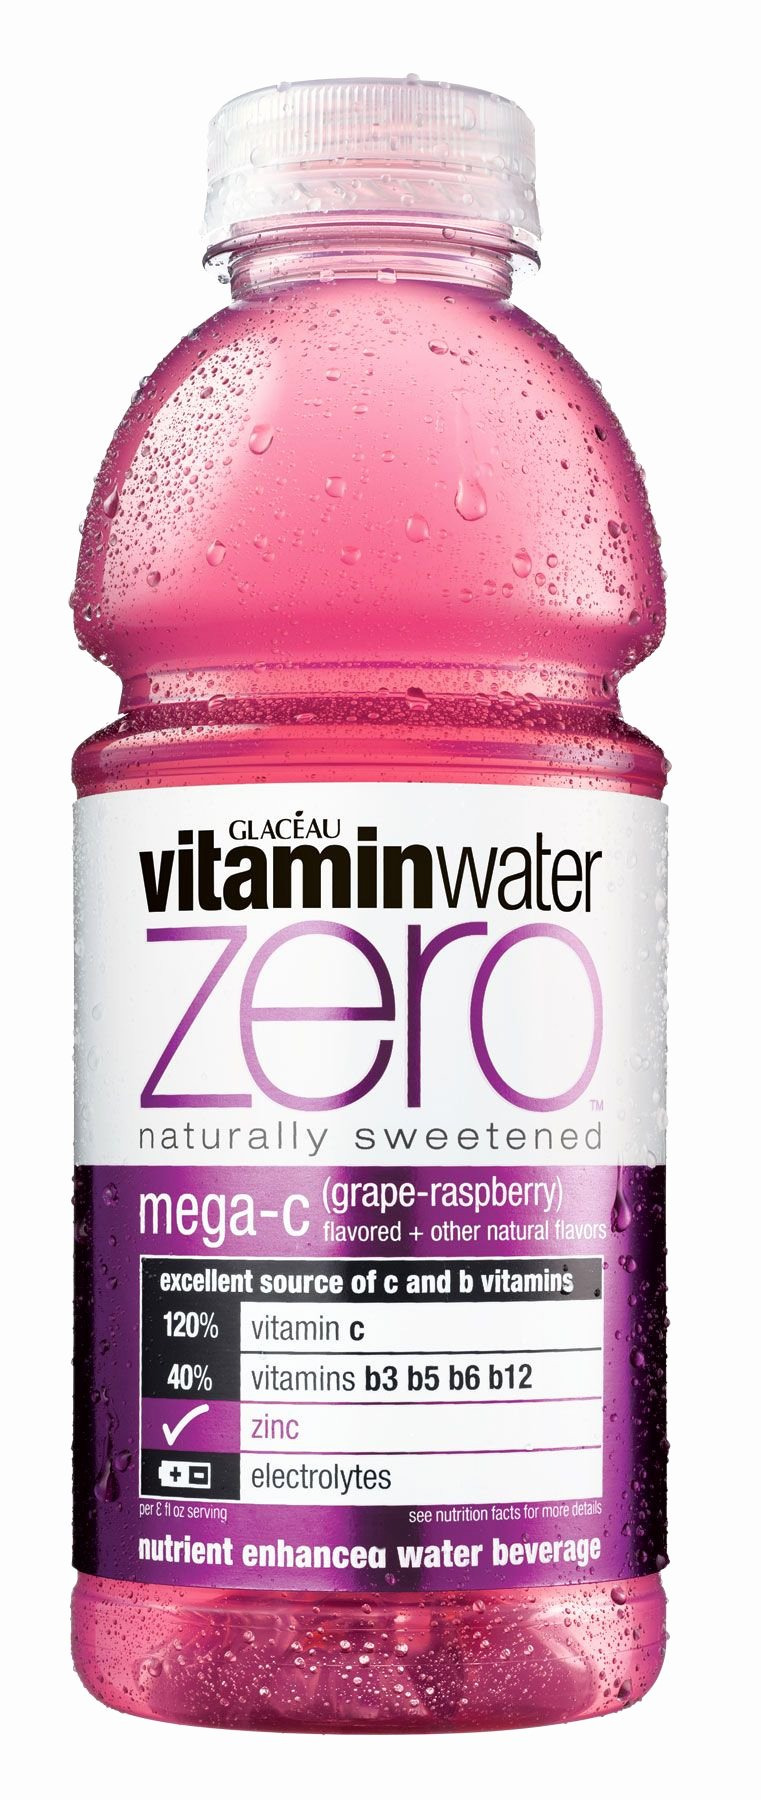 Vitamin Water Label Template Lovely Vitamin Water Zero Use Of Ko Type In Nutrition Facts Panel Back It Up